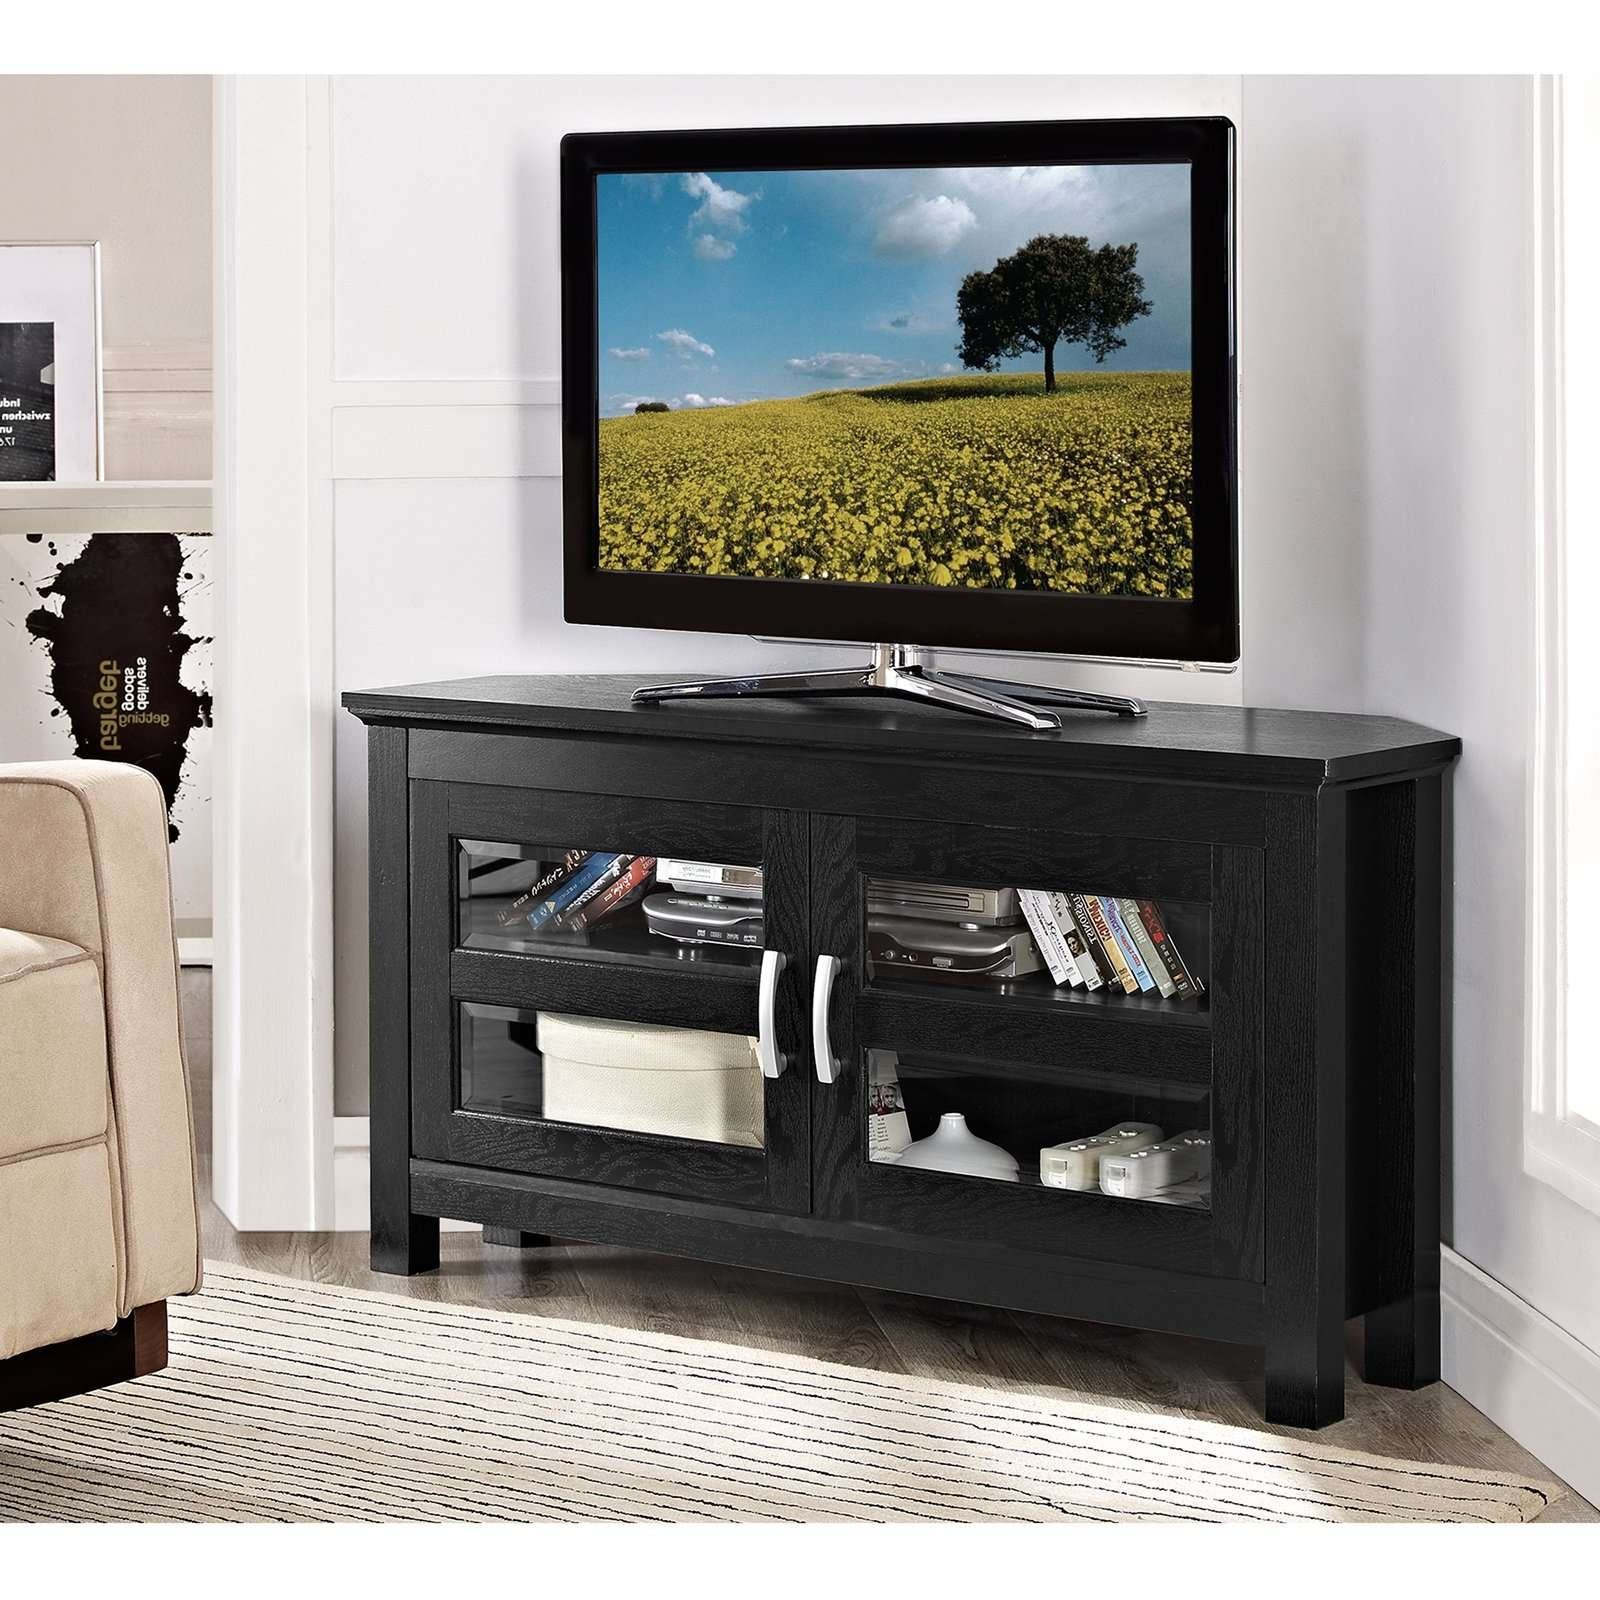 Compton Black Corner Tv Stand | Hayneedle Throughout Black Corner Tv Stands For Tvs Up To  (View 3 of 20)